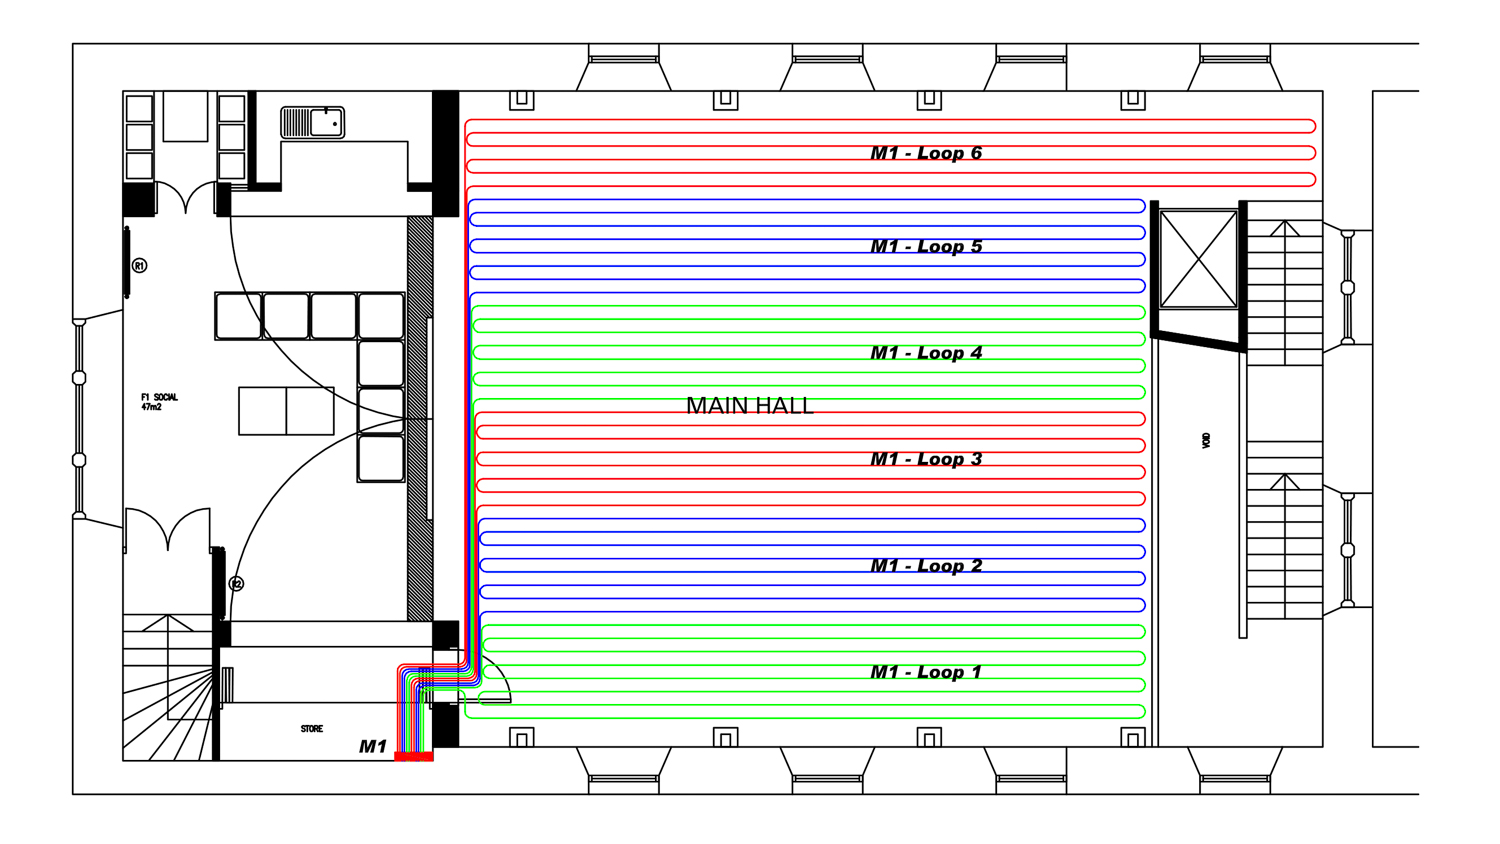 Do you deal with the design element of underfloor heating as well? - Yes,we offer CAD design service including pipework layouts, heat output calculations and in some instances heat loss calculations. All design work is carried out to relevant standards (in particular BS EN1264) and following CIBSE guidelines.